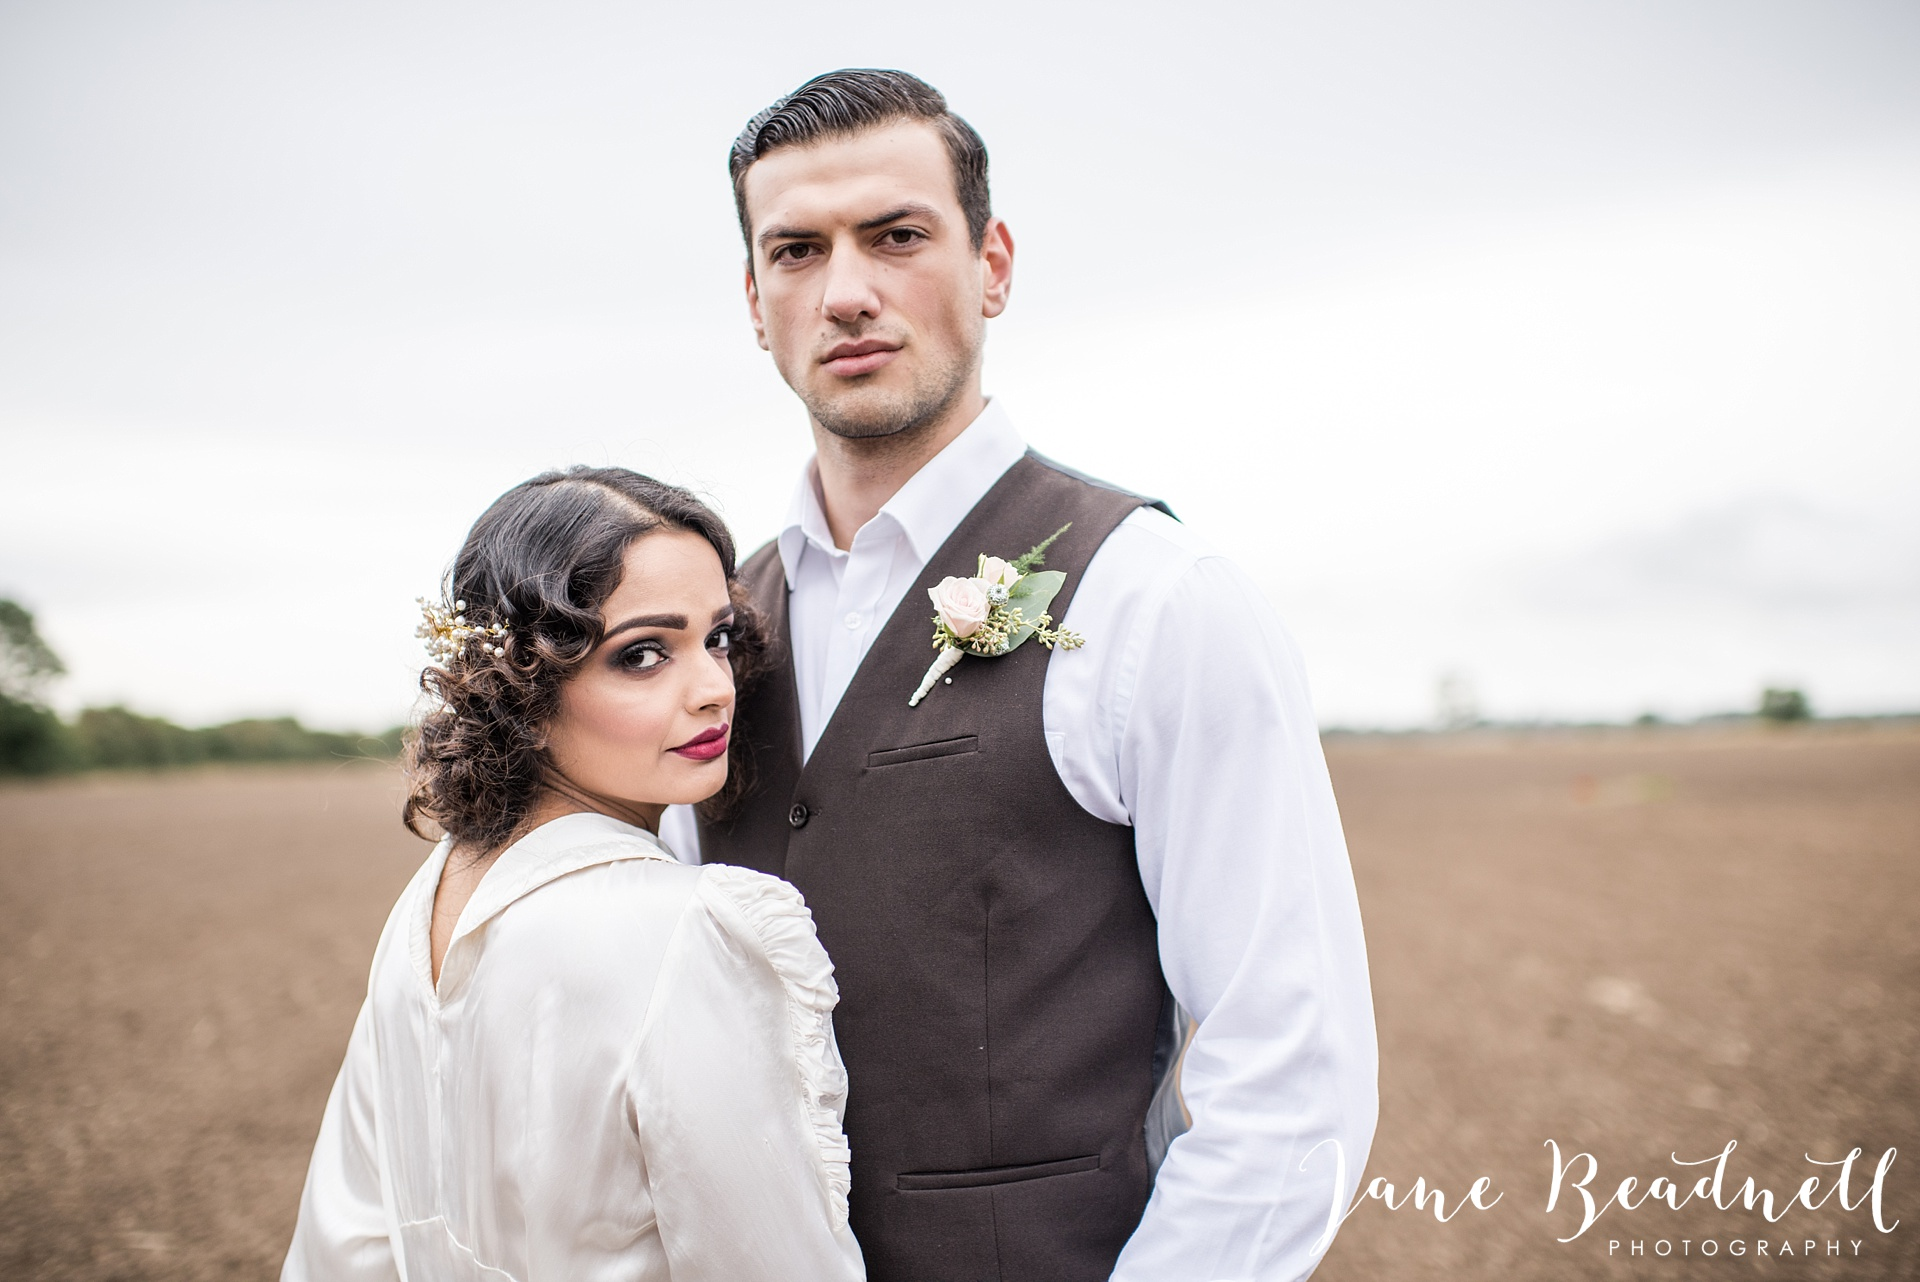 fine-art-wedding-photographer-jane-beadnell-photography-yorkshire-wedding-photographer_0017